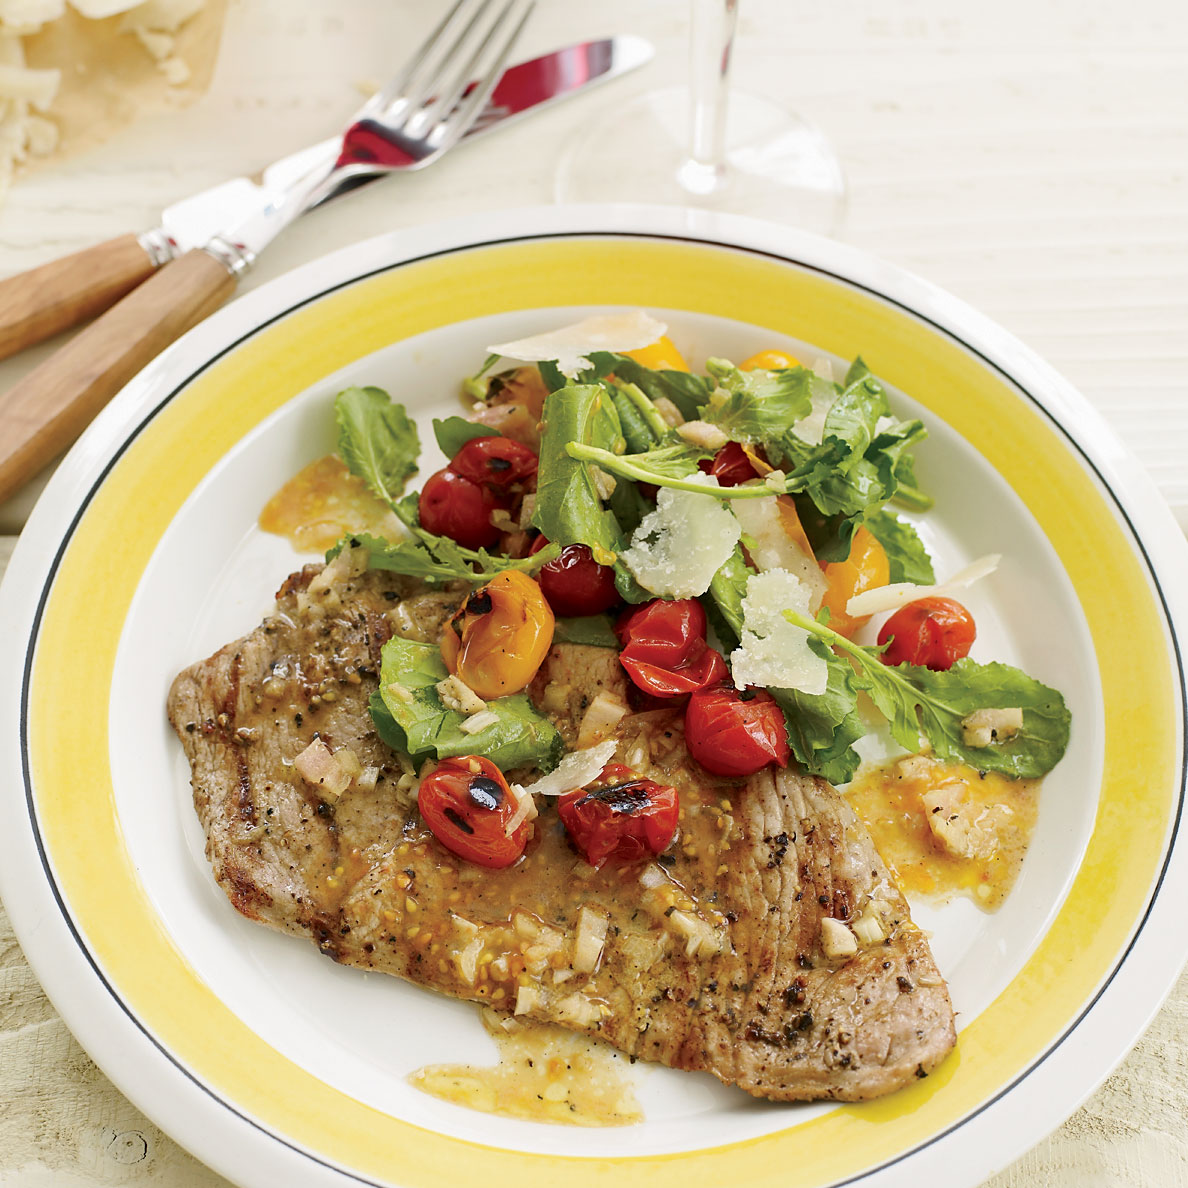 200806-r-veal-scallopine-tomato.jpg